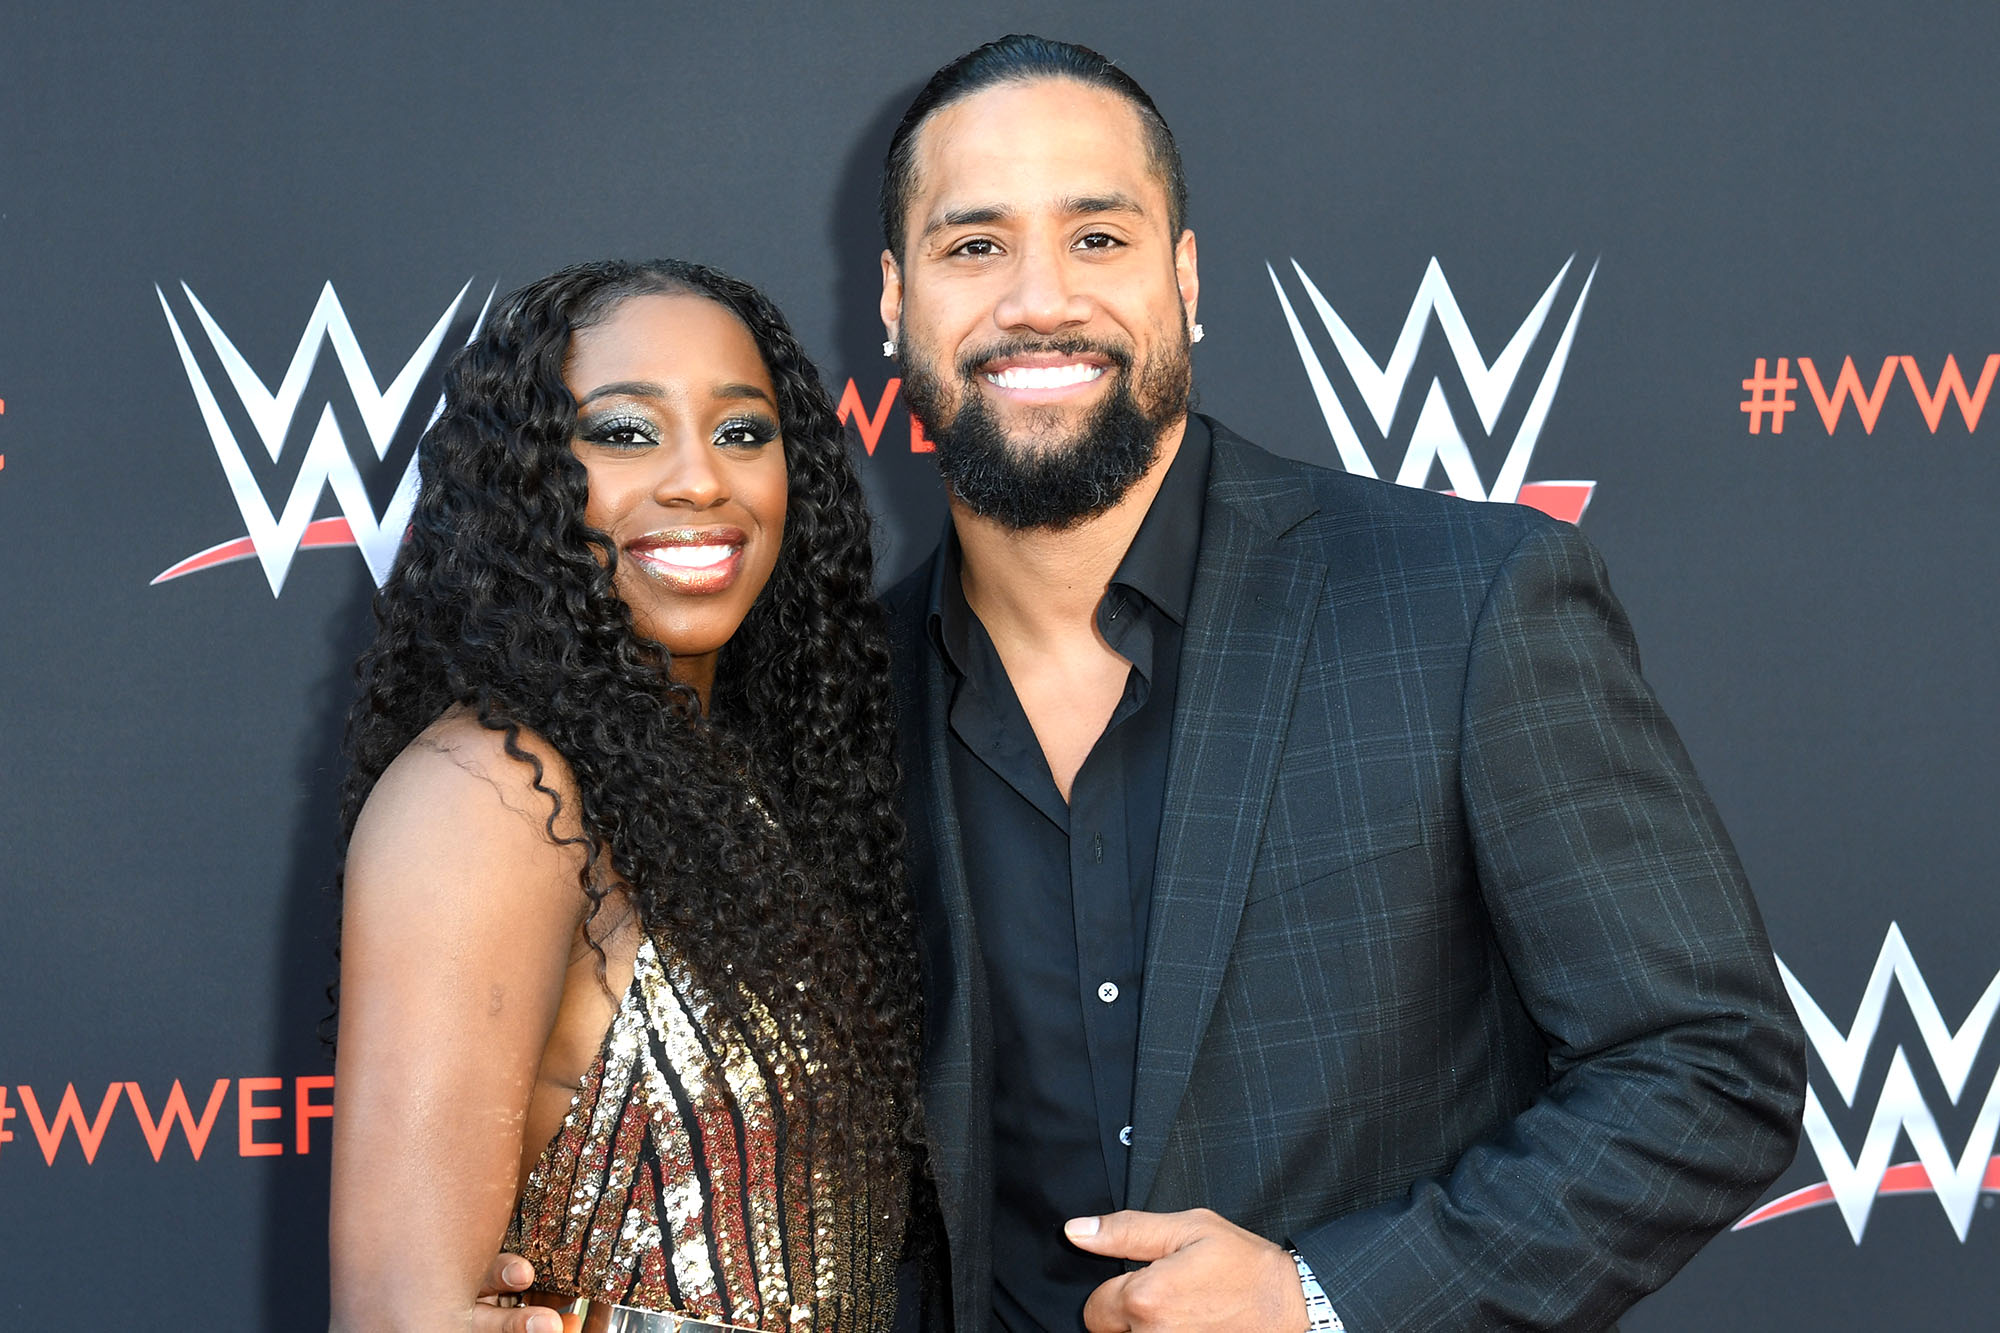 WWE star Jimmy Uso arrested after incident with cops